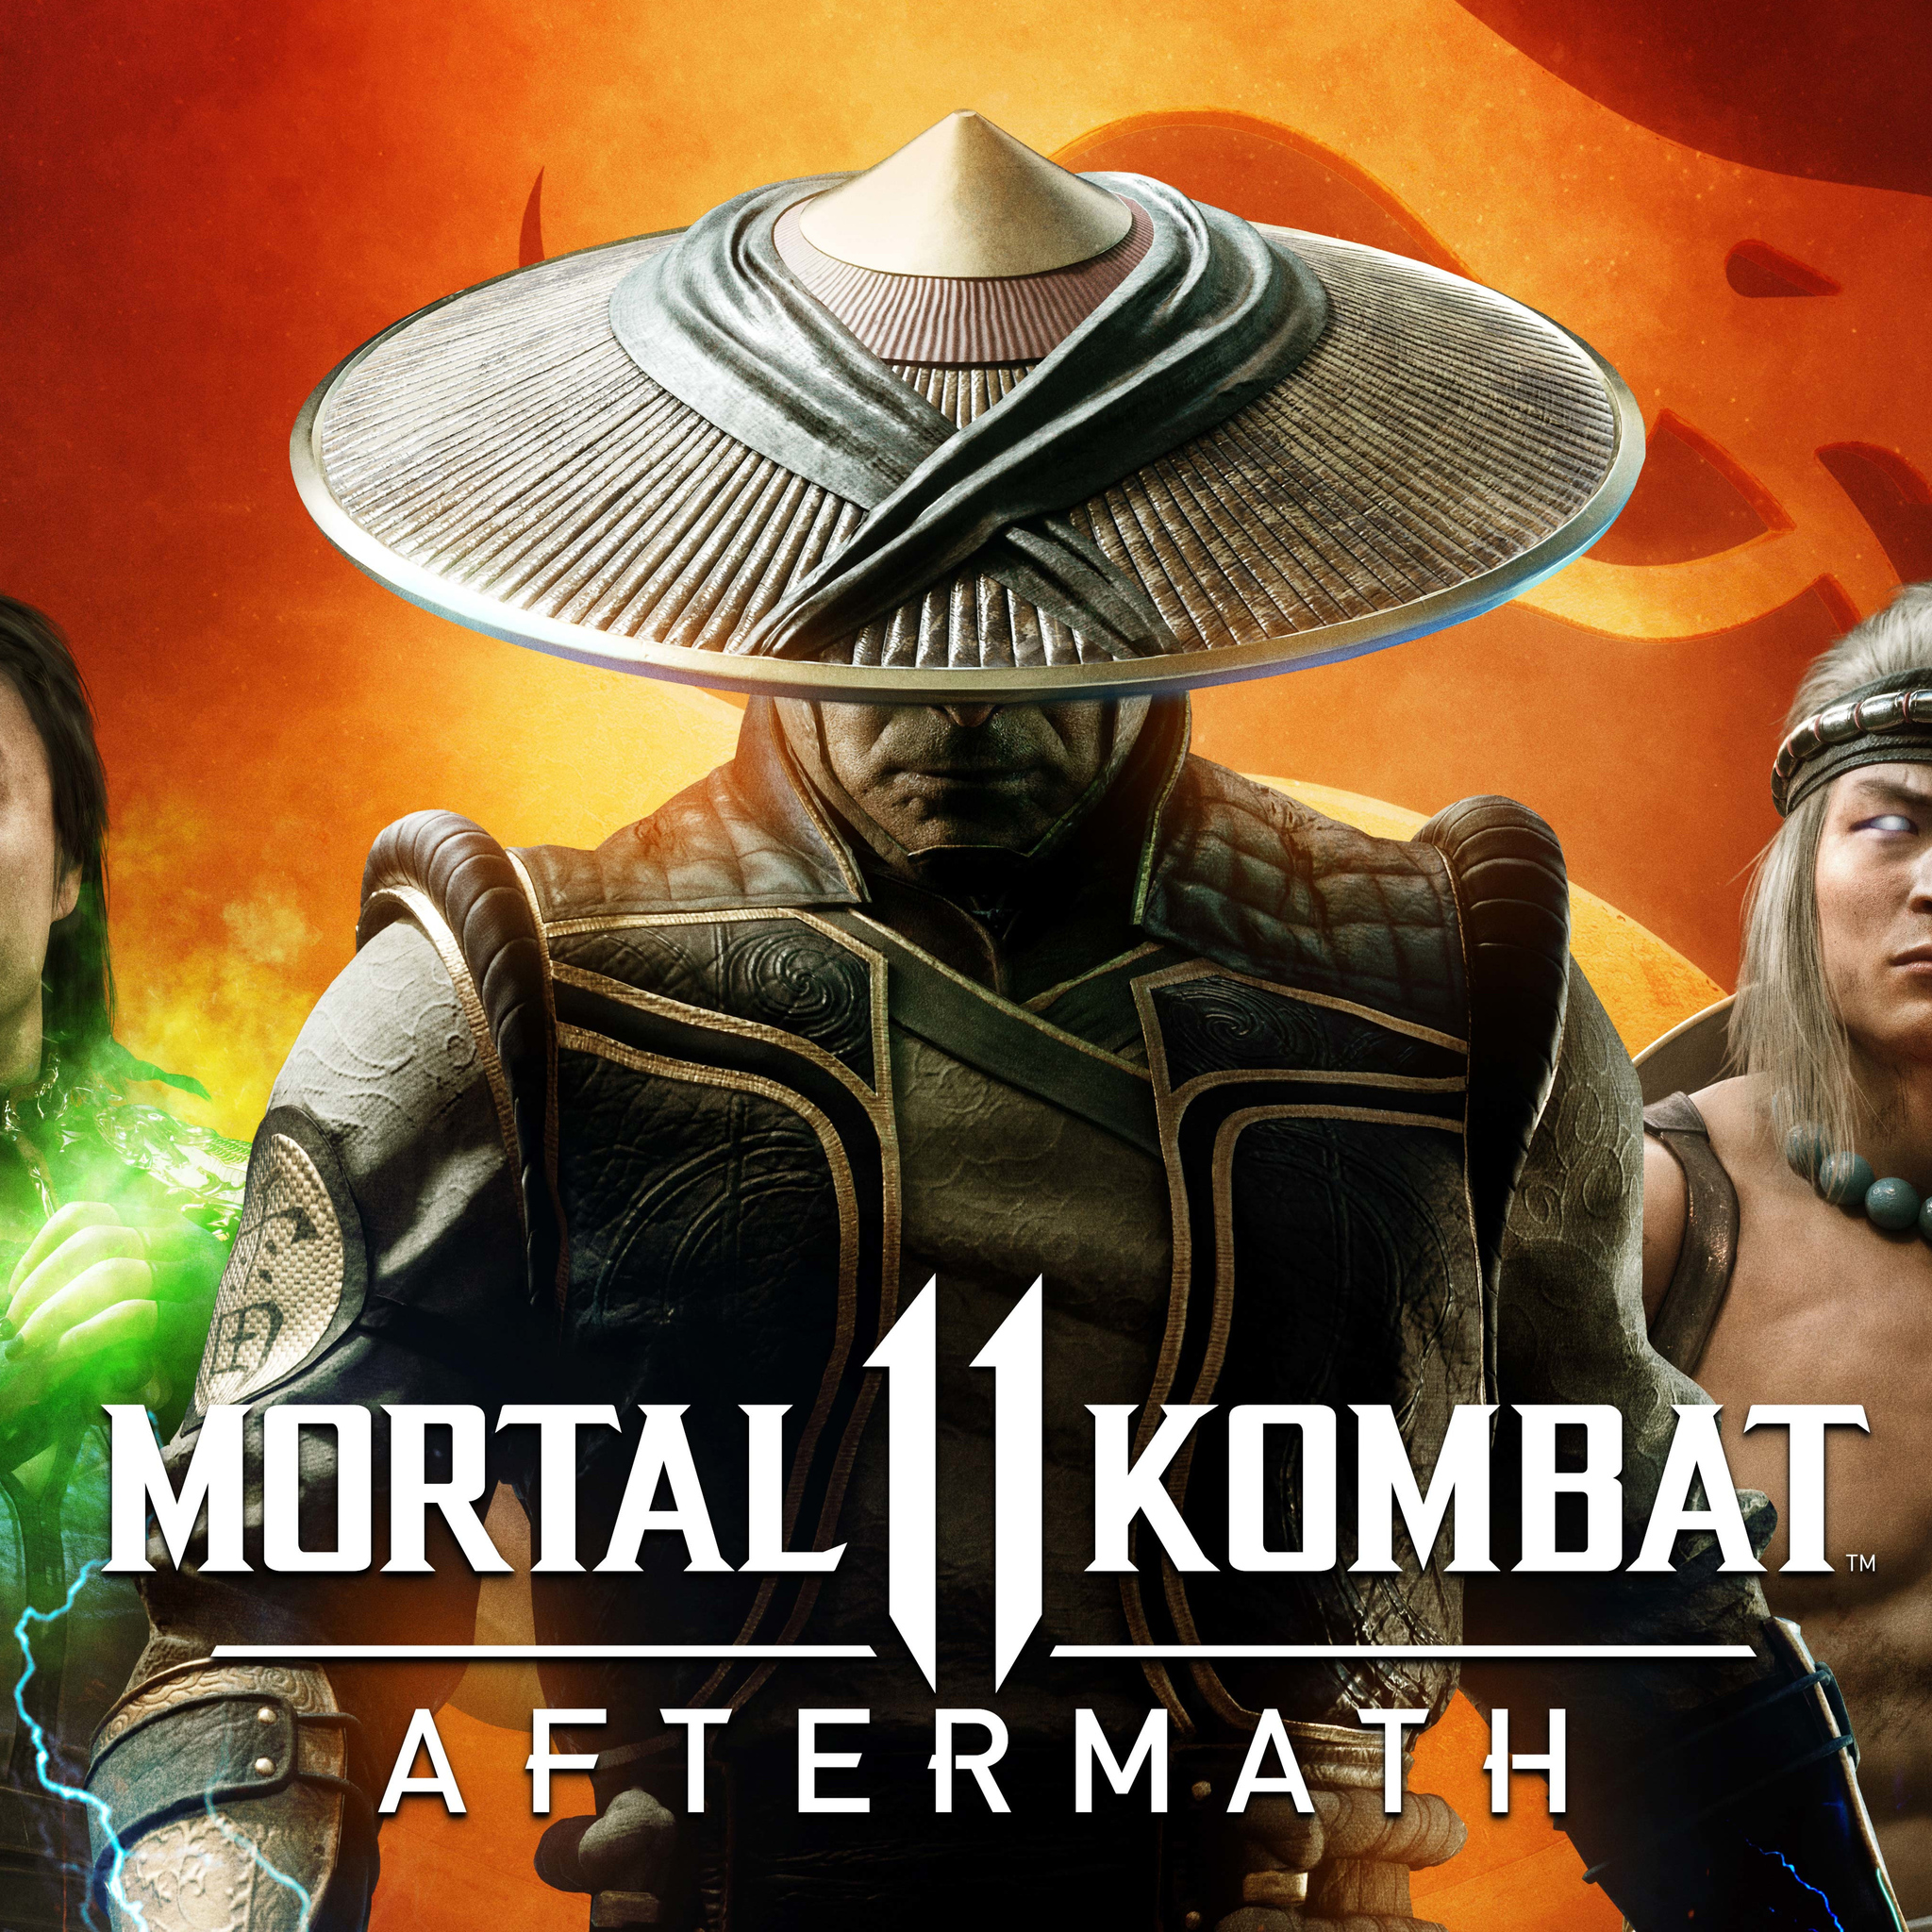 2048x2048 Mortal Kombat 11 Aftermath 8k Ipad Air Hd 4k Wallpapers